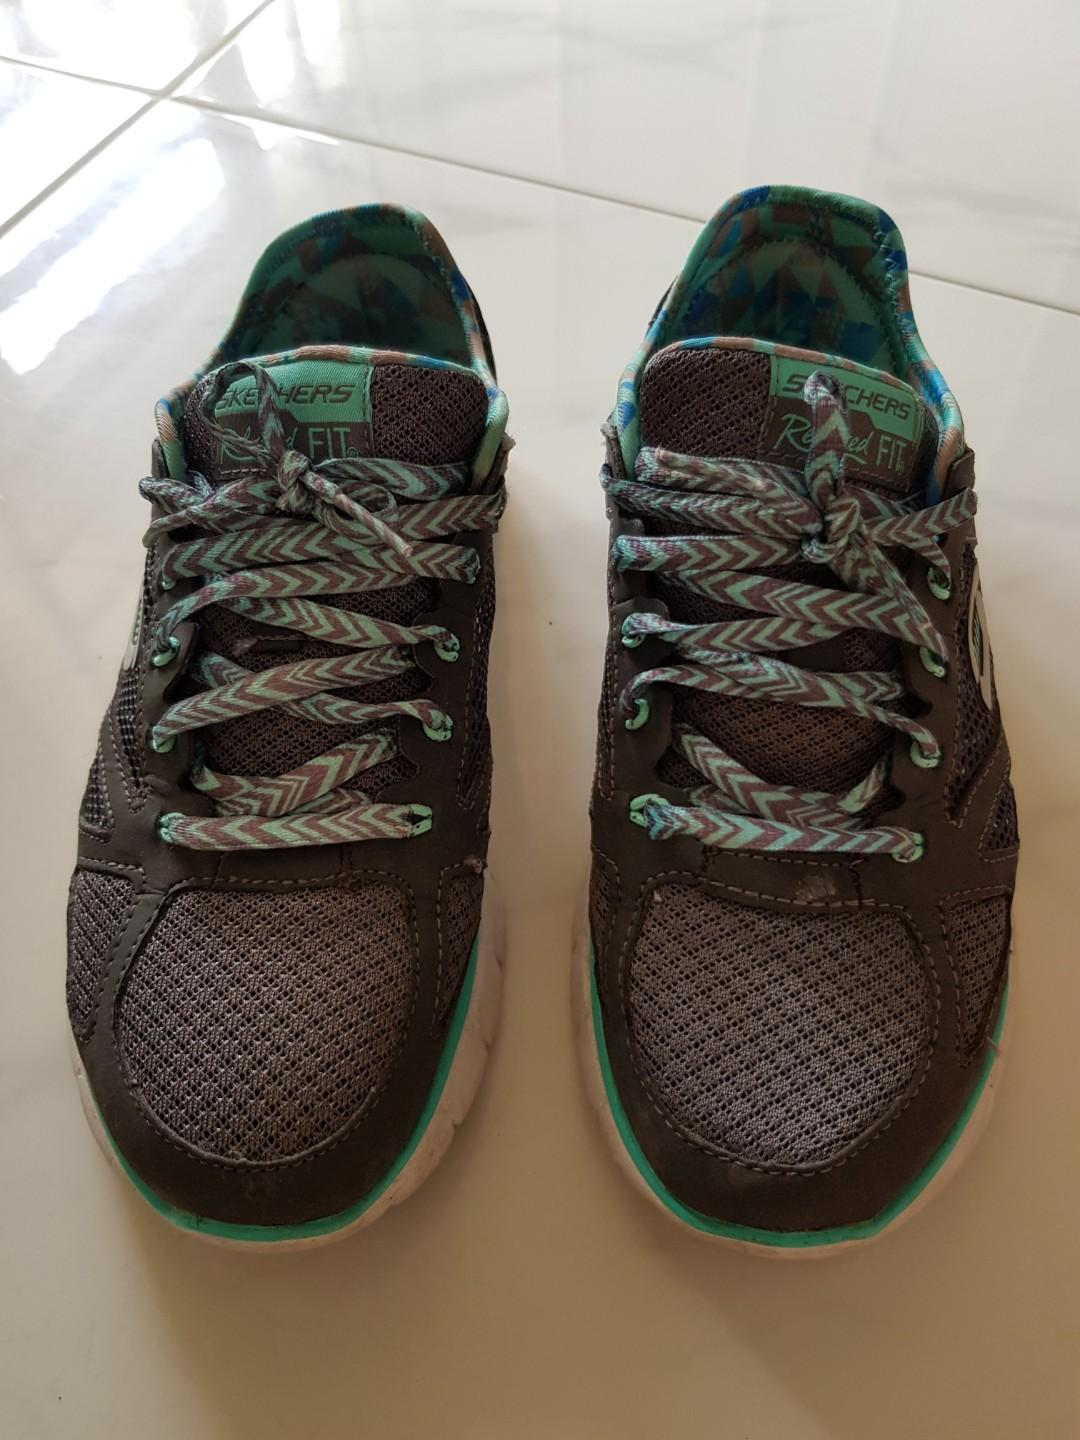 Sketcher sports shoes, Women's Fashion, Shoes, Sneakers on